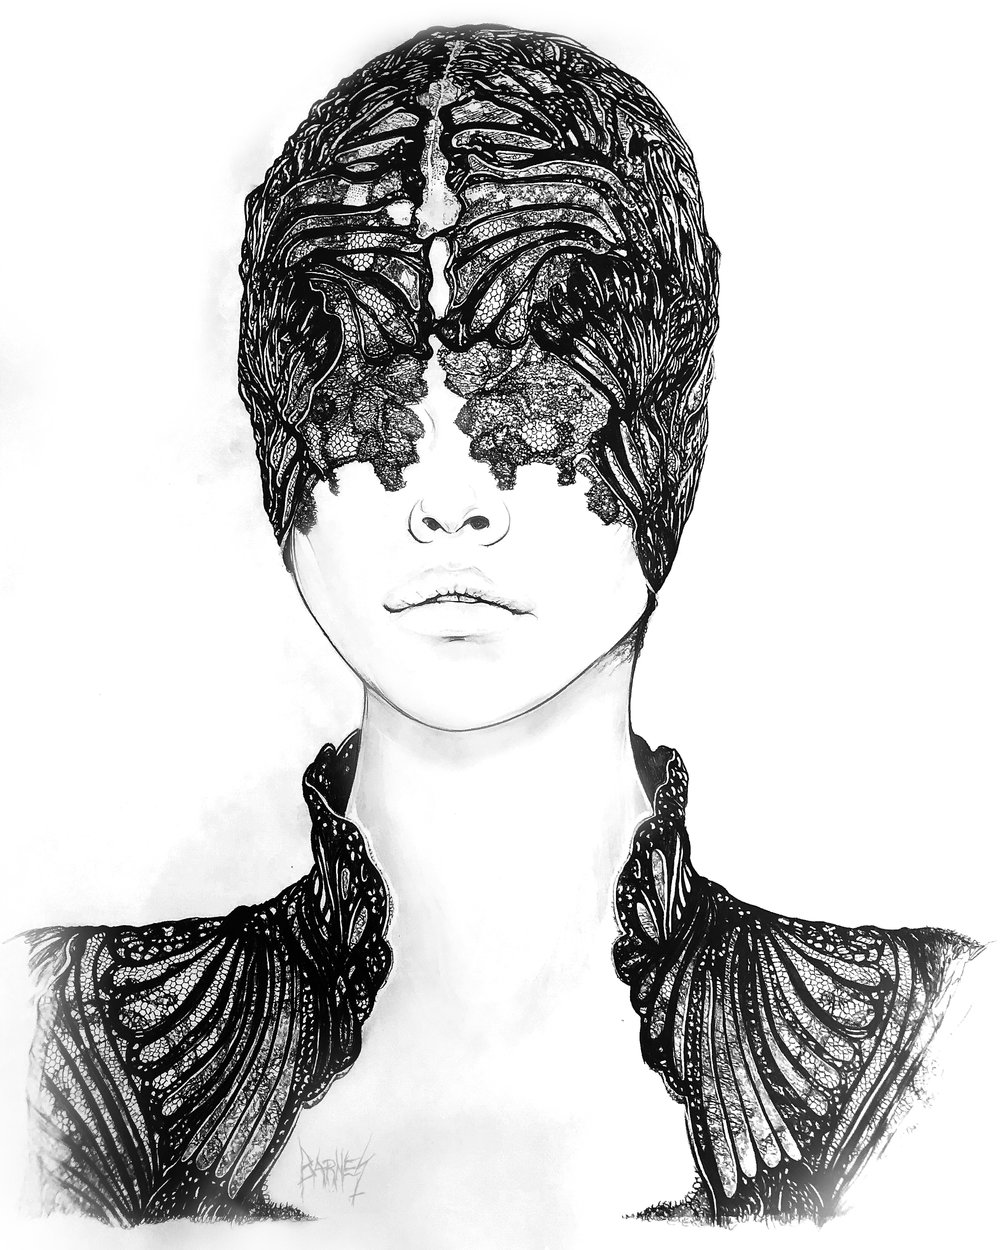 BBKUNST-BRYAN-BARNES-Art-Artist-hyper-realistic-Pencil-dark-art-beautiful-Drawings-Art_Alexander_McQueen_Spring-Ready-To-Wear_2012-Black_Mask_Barbara_Palvin_BLACKOUT-BEAUTY_2-Final.jpg